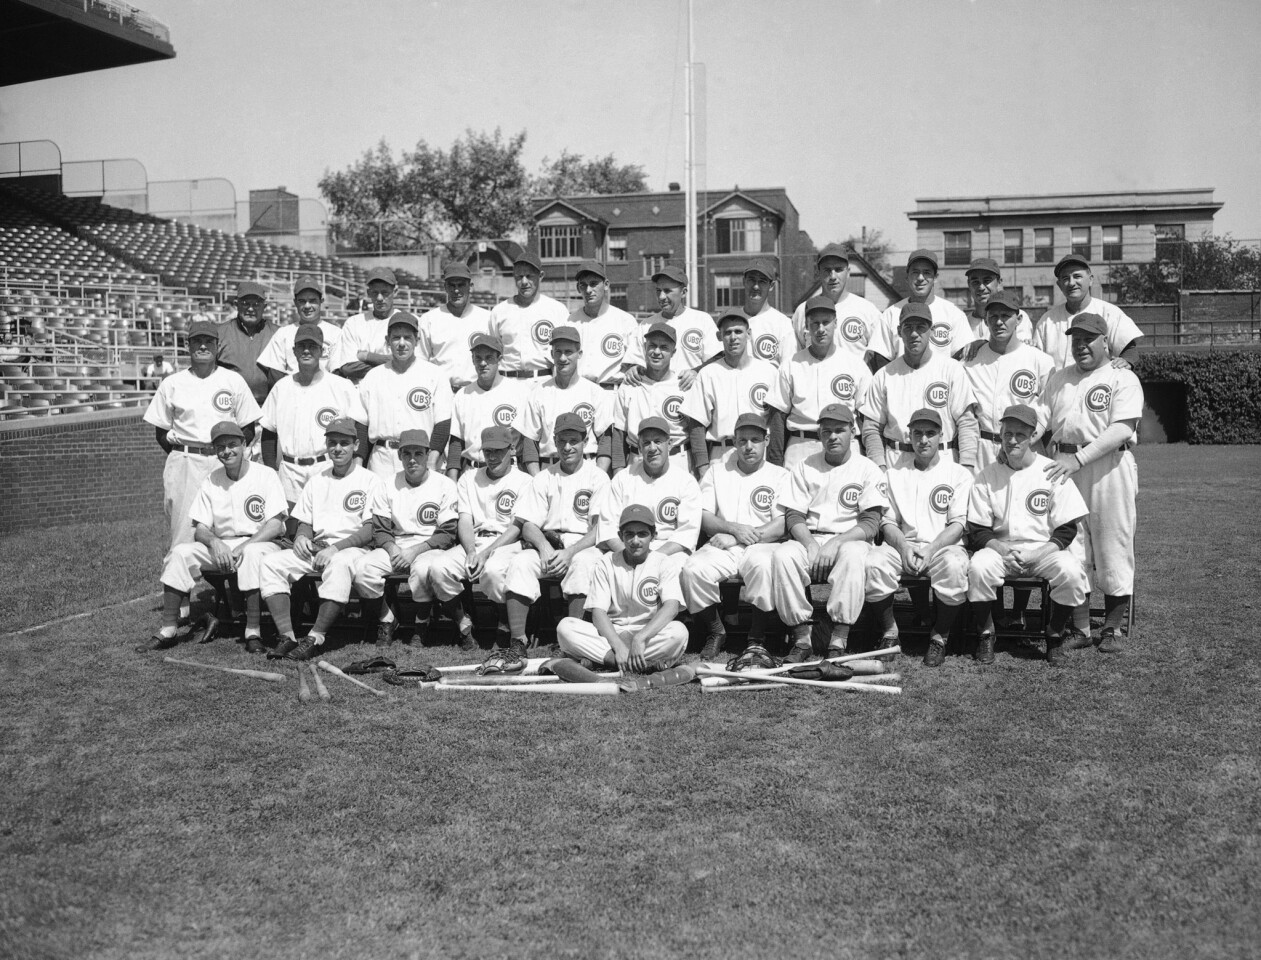 Members of the Chicago Cubs pose for the 1945 team picture in Wrigley Field, Chicago, Aug. 27, 1945. Front row, left to right: Stan Hack, Don Johnson, Harry Lowrey, Phil Cavarretta, Andy Pafko, manager Charley Grimm, Bill Nicholson, Paul Gillespie, Len Merullo, Hank Borowy. Second row, left to right: Claude Passeau, Mickey Livingston, Paul Derringer, Len Rice, Dewey Williams, Ray Prim, Bob Chipman, Hy Vandenberg, Frank Cory, Heinz Becker, coach Red Smith. Back row, left to right: trainer Andy Lotshaw: Hank Wyse, Lon Warneke, Ray Starr, Paul Erickson, Ed Hanyzewski, Roy Johnson, Walter Signer, Ed Sauer, Roy Hughes, Bill Schuss, coach Milt Stock. Batboy is Jim Chalikis. (AP Photo)